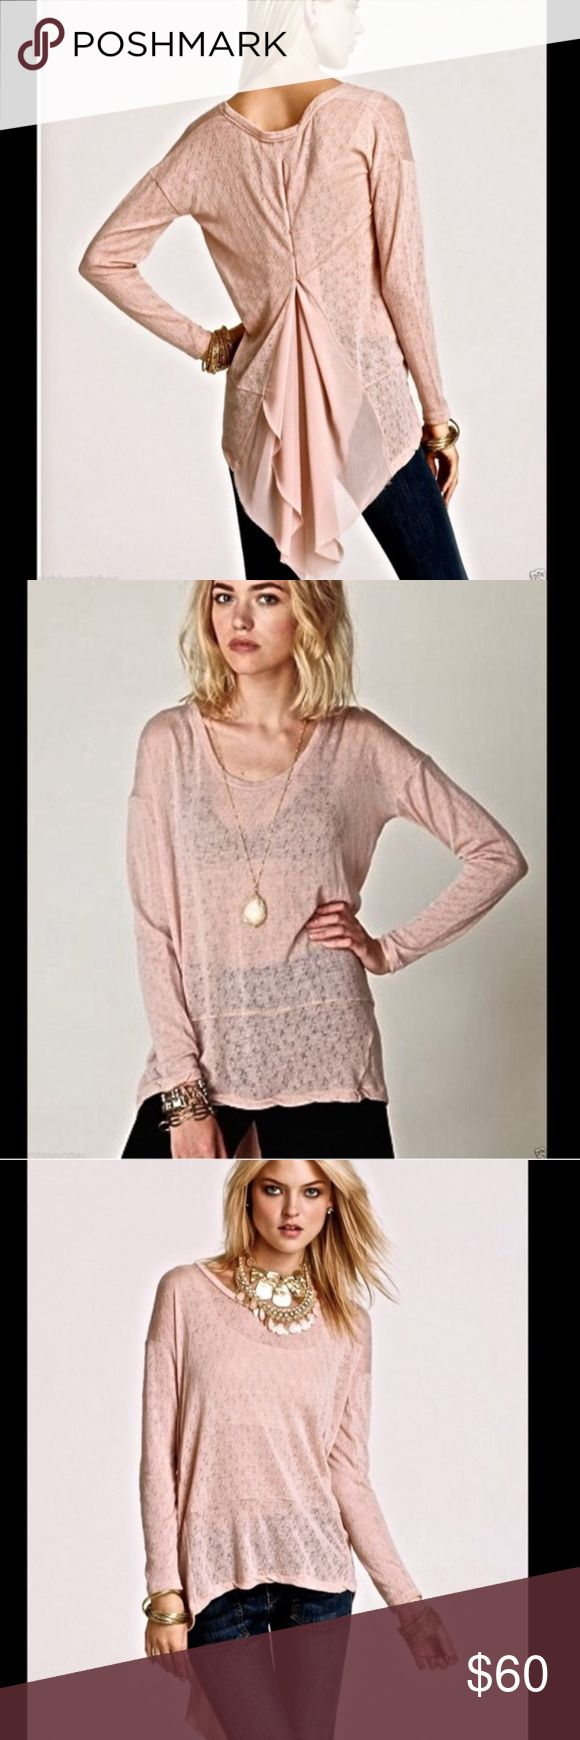 Free People New Romantics Accordion Tee Baby pink accordion tee by Free People. Long sleeves, extreme high low detail with long train in the back. Buttons up the back with open back detail. No flaws, gently used. Size small. I ship daily - excluding Sundays and holidays - and I store items in a smoke free, pet free environment. Open to offers; bundles discounted! Free People Tops Tees - Long Sleeve